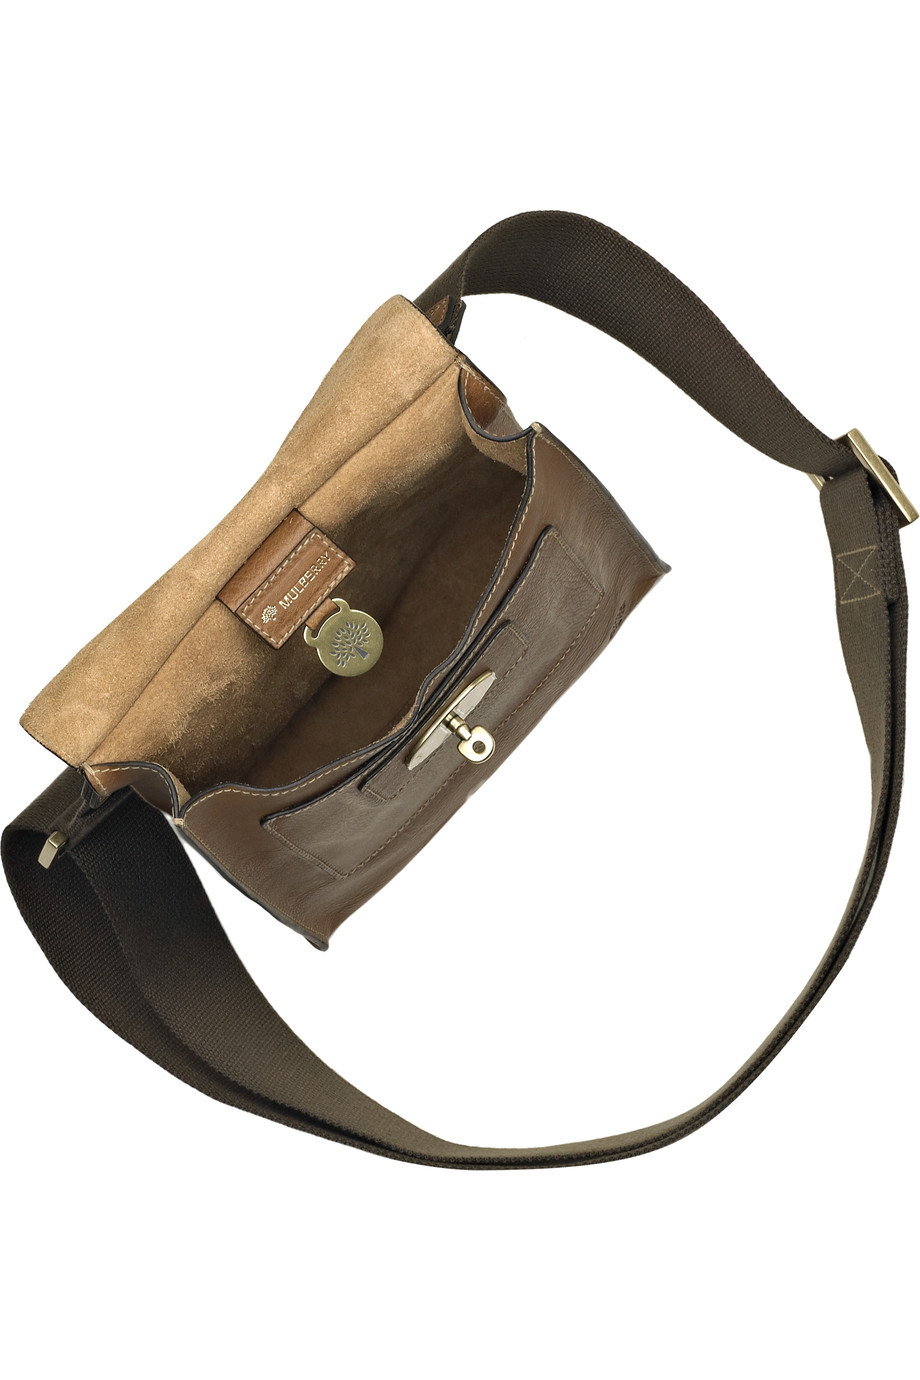 ... coupon code lyst mulberry antony leather cross body bag in brown edfc4  eef73 f54ead77d9f0c